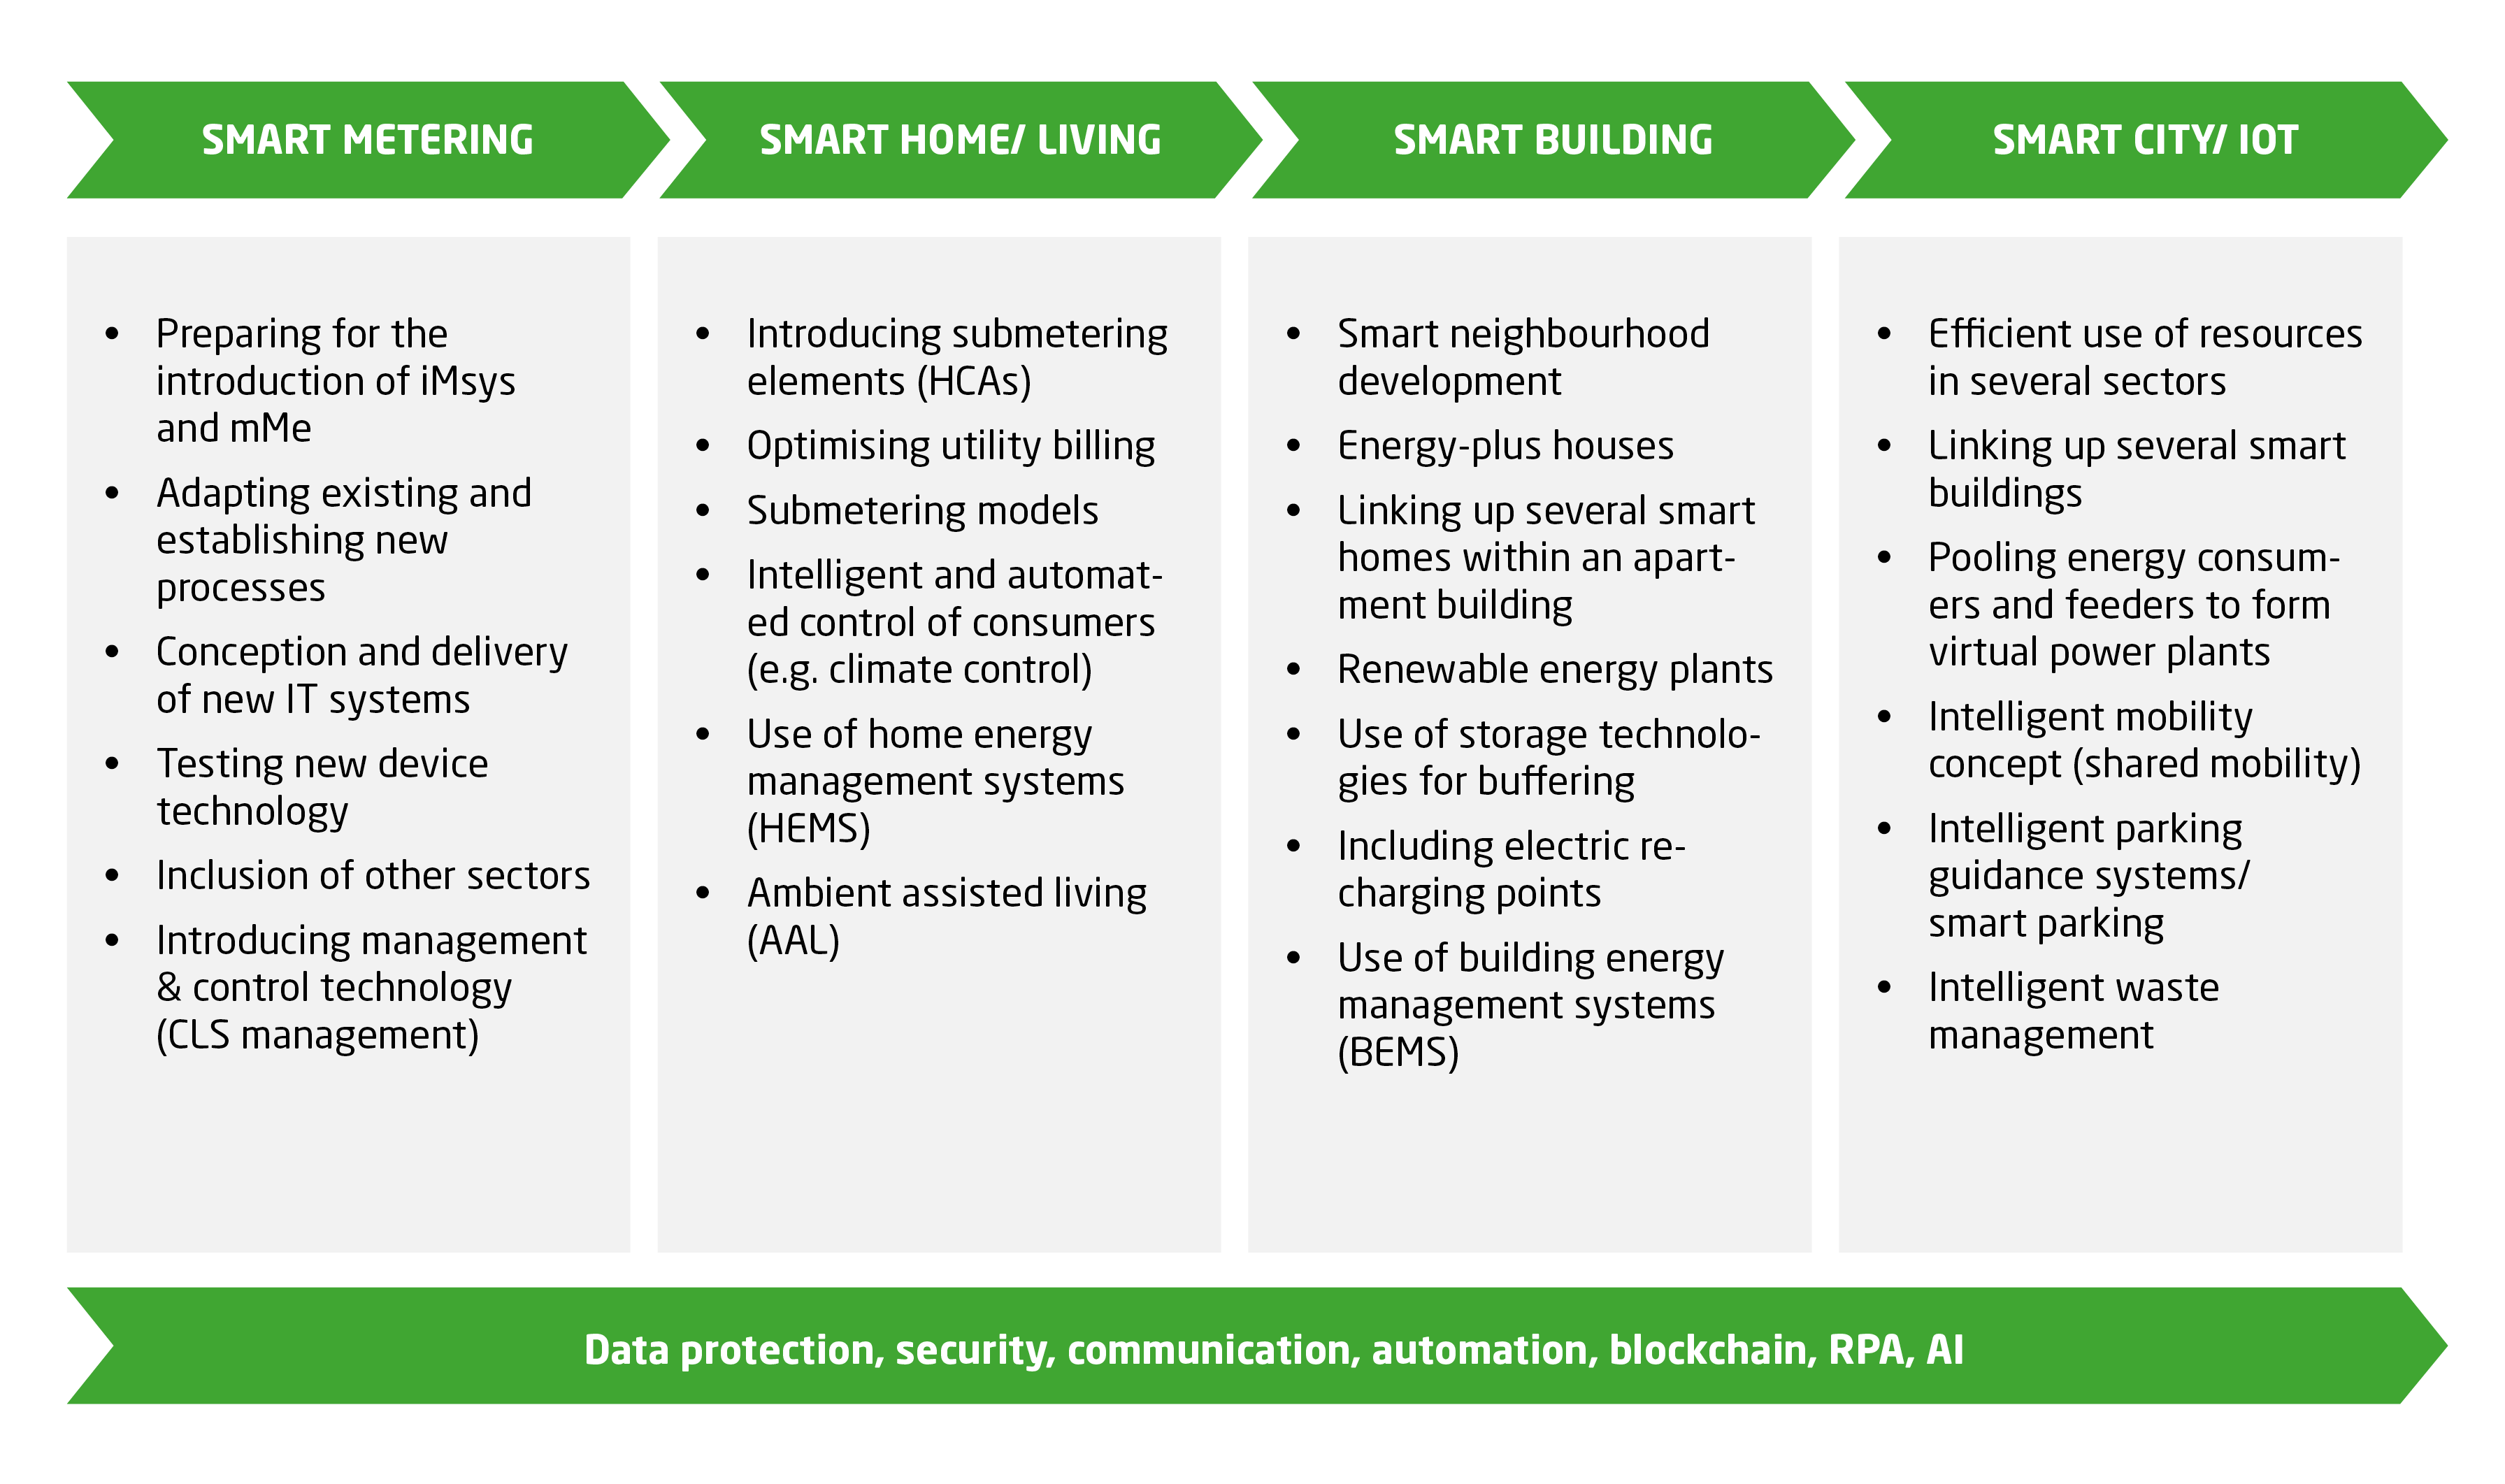 The road to a smart city